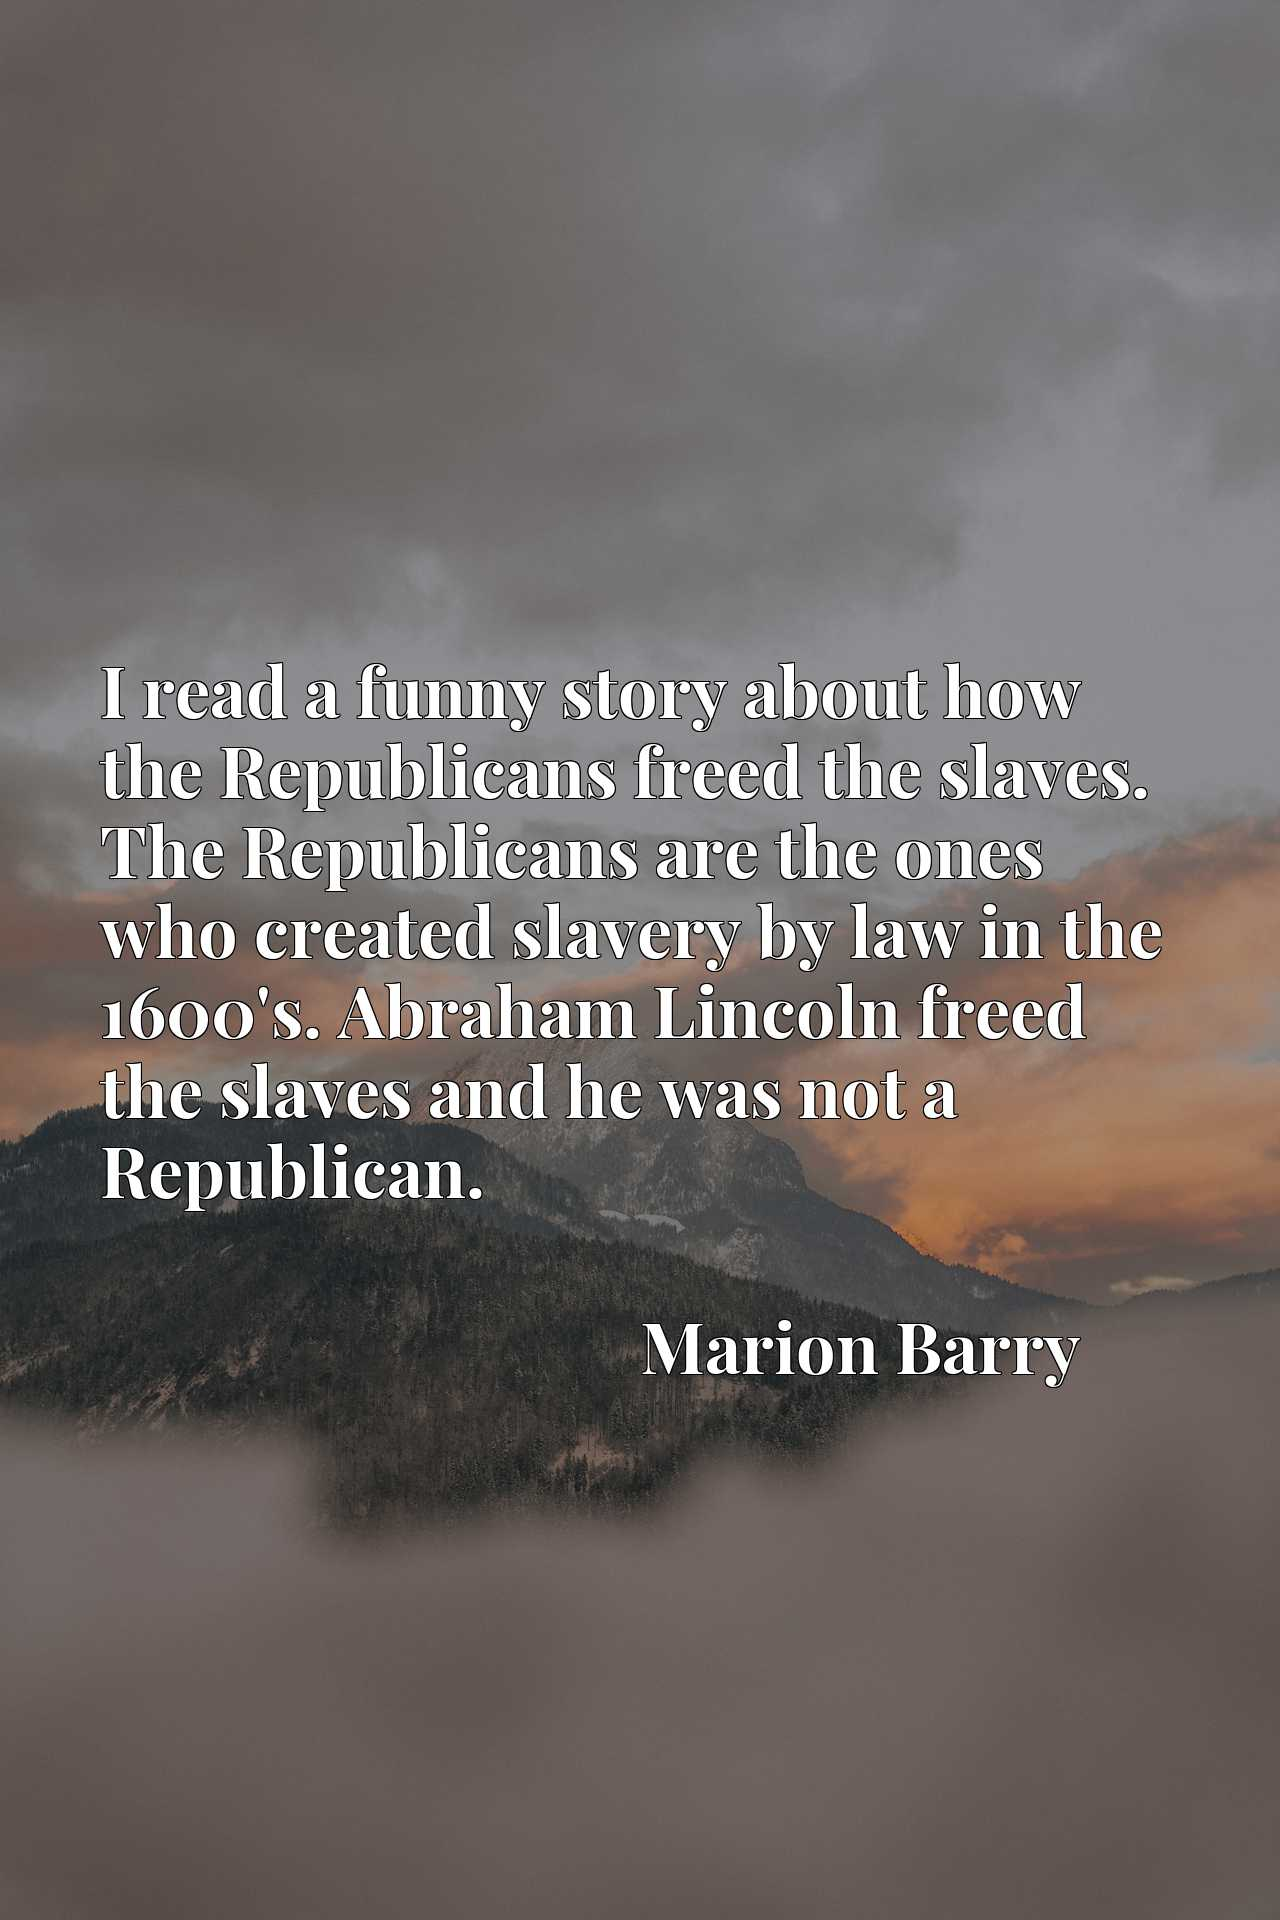 I read a funny story about how the Republicans freed the slaves. The Republicans are the ones who created slavery by law in the 1600's. Abraham Lincoln freed the slaves and he was not a Republican.